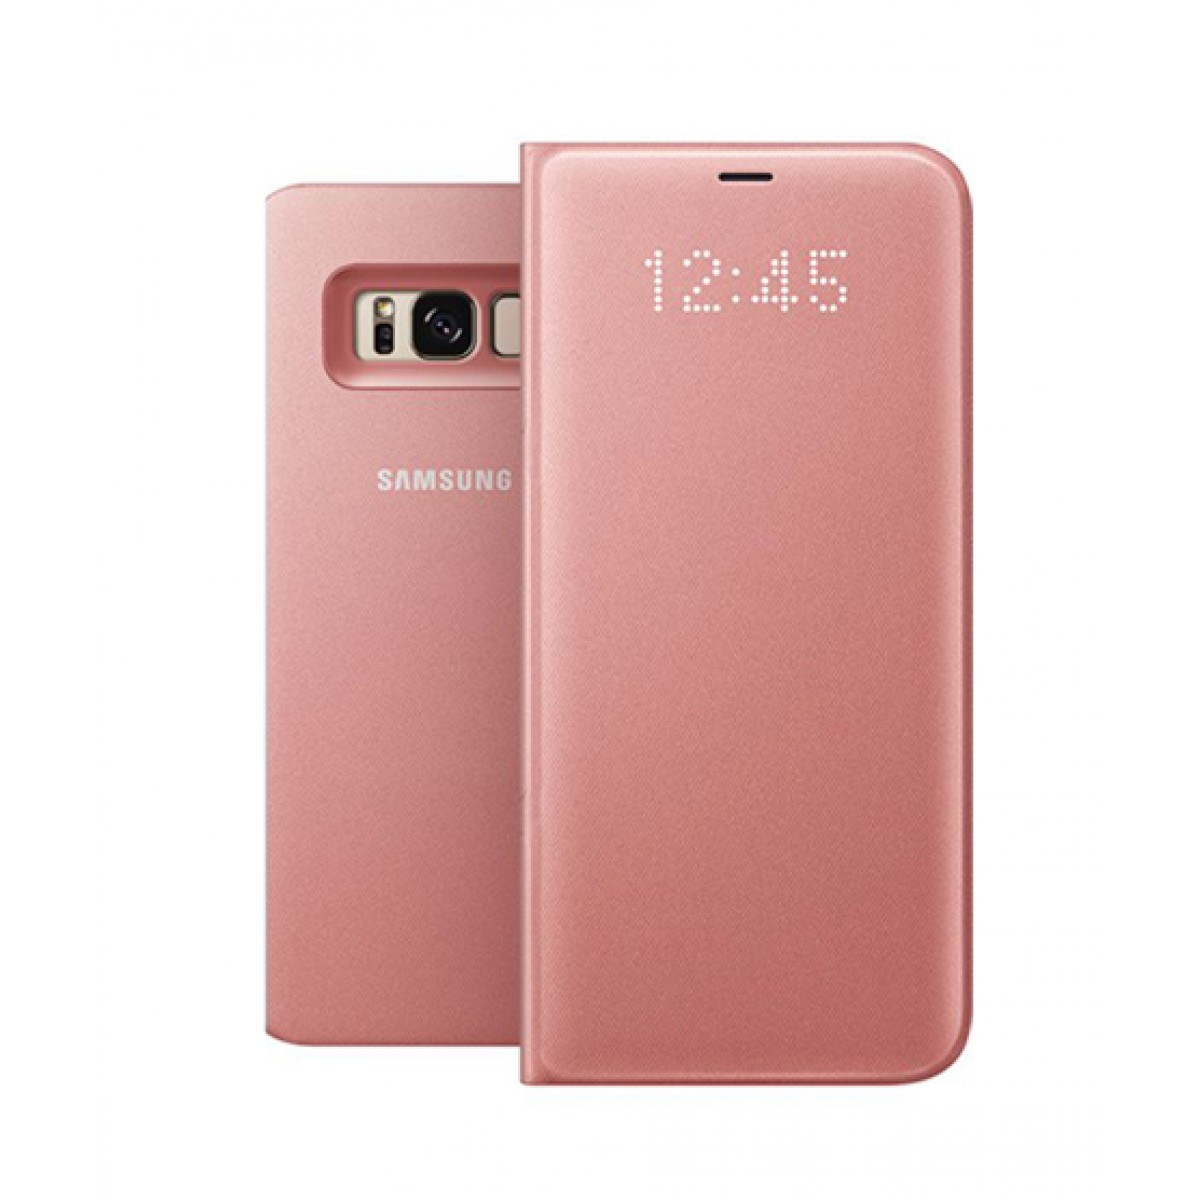 buy online e41a4 10492 Samsung LED View Pink Cover For Galaxy S8+